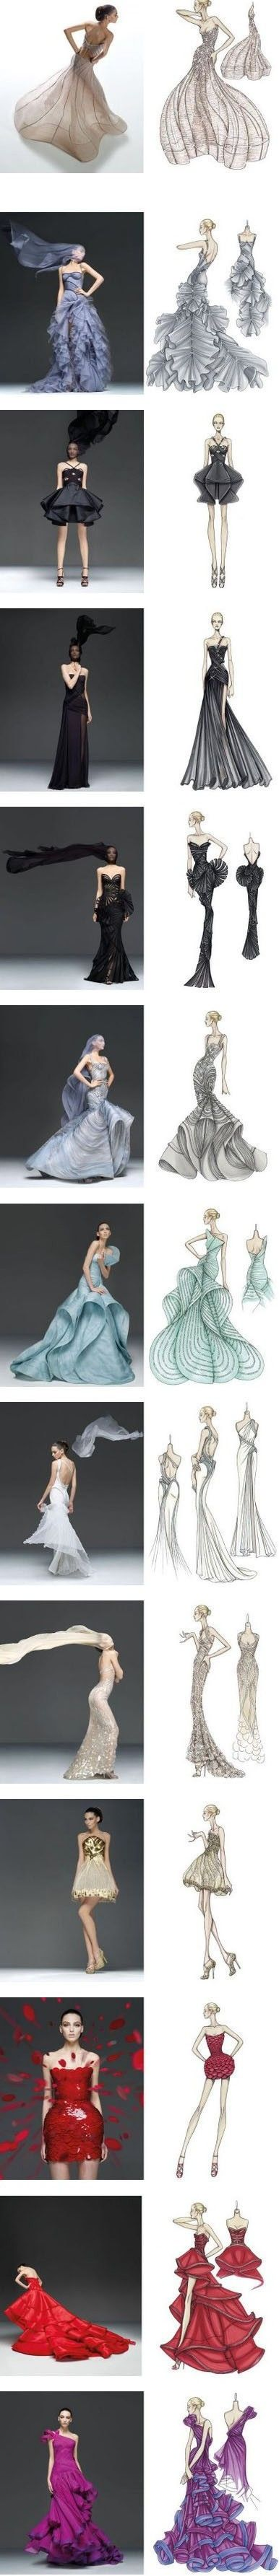 Beautiful examples of fashion illustrations and the garments they are based on